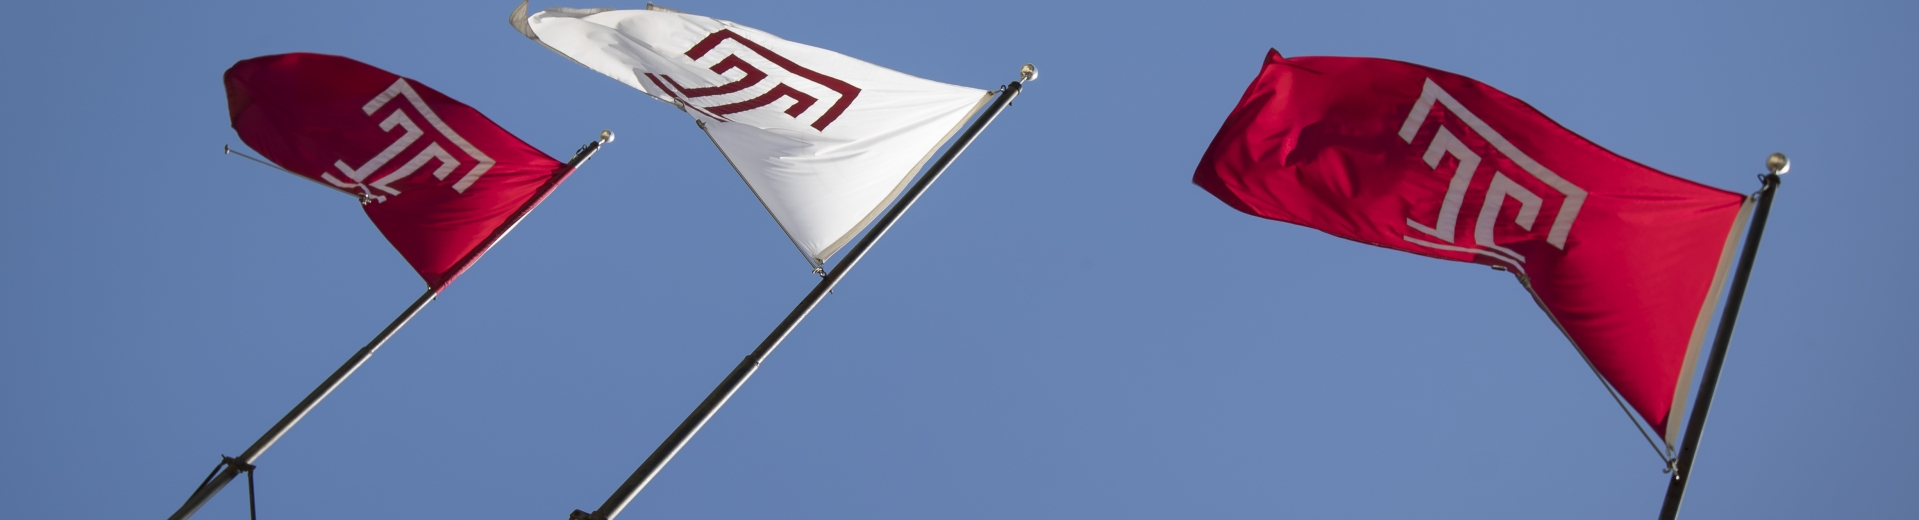 Picture of Temple flags waving in the wind